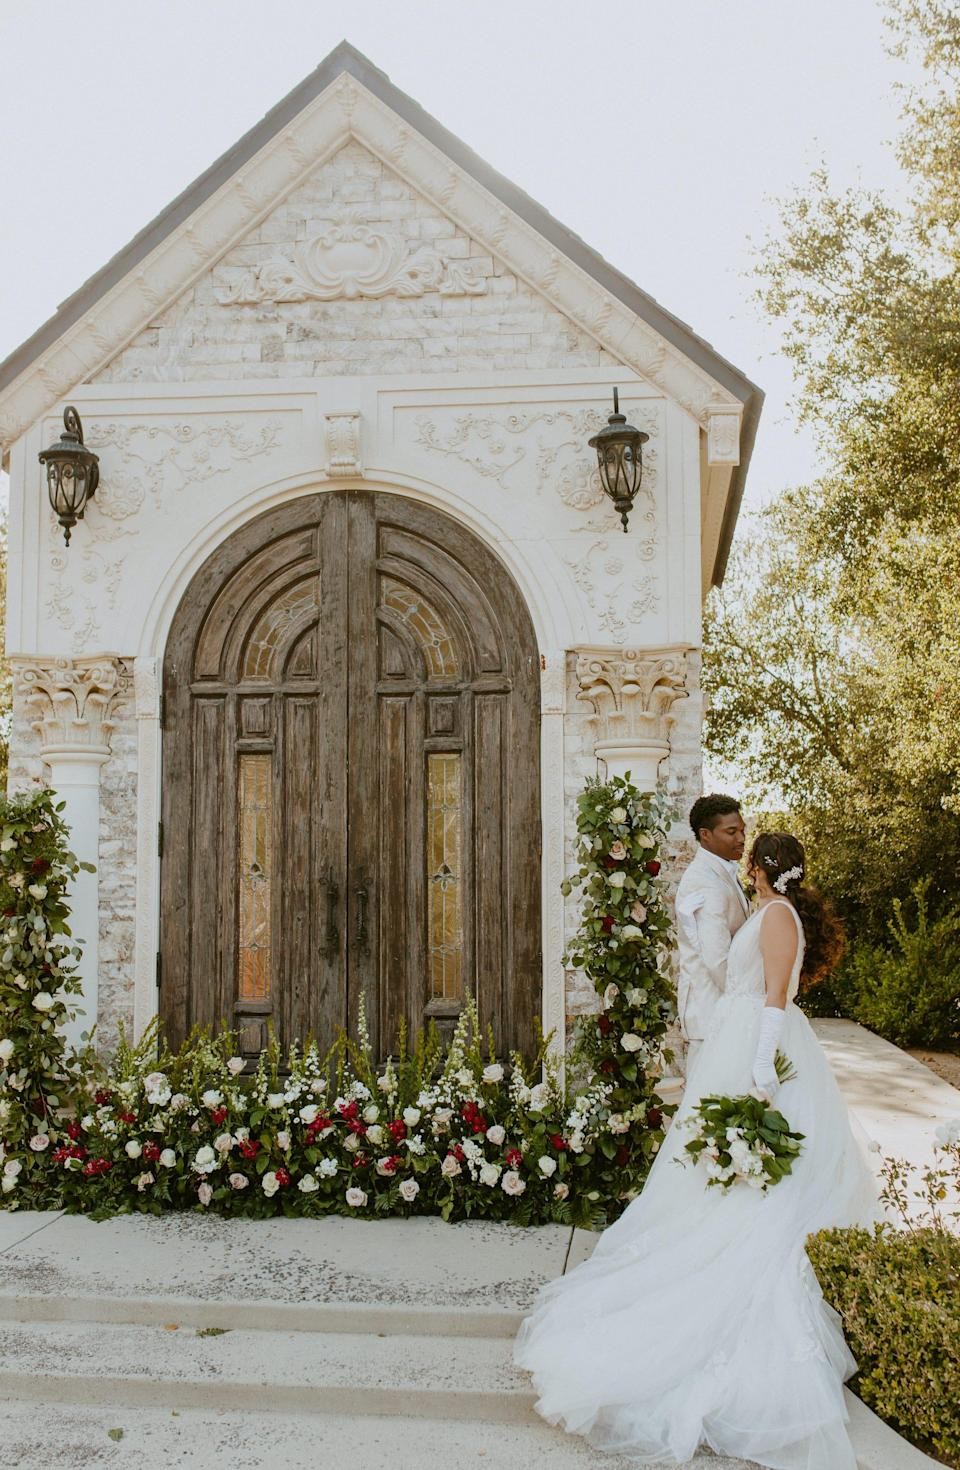 A bride and groom embrace in front of a chapel.